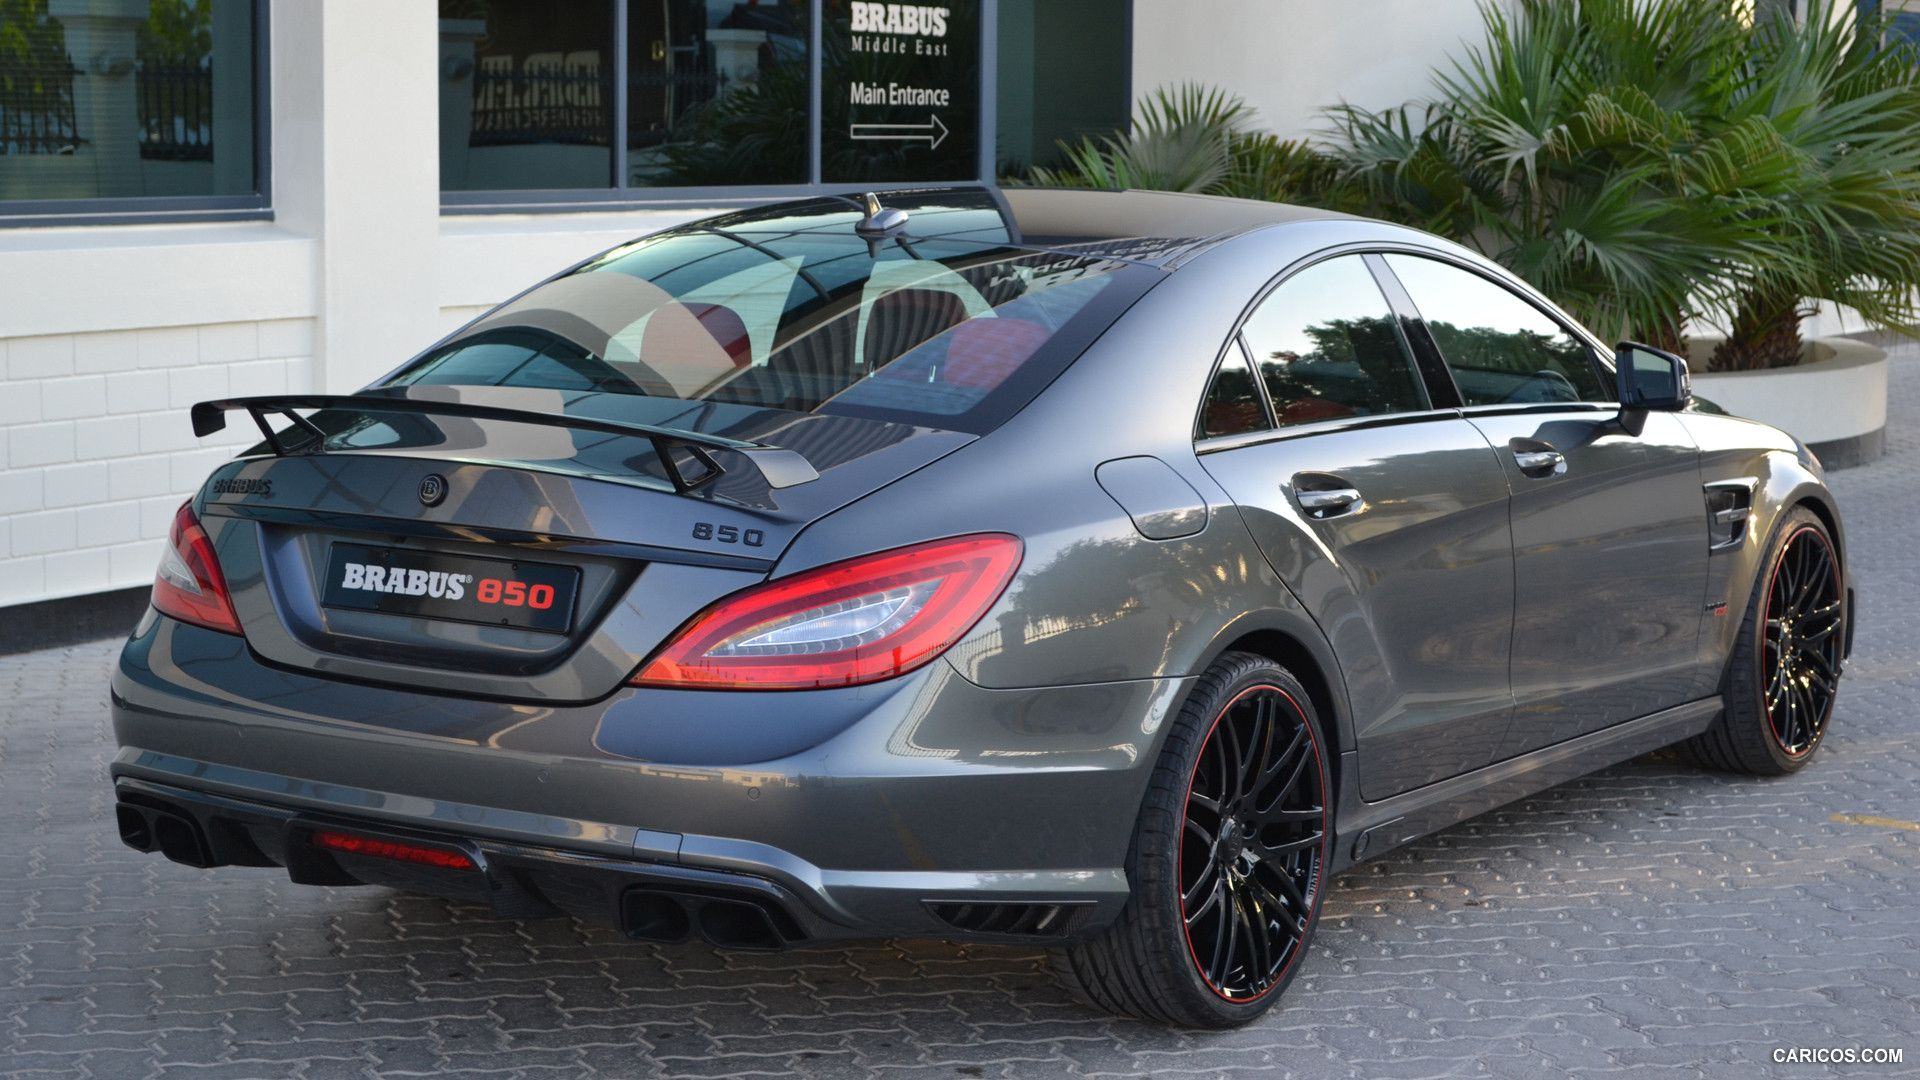 2014 brabus 850 60 biturbo based on mercedes benz cls63 amg